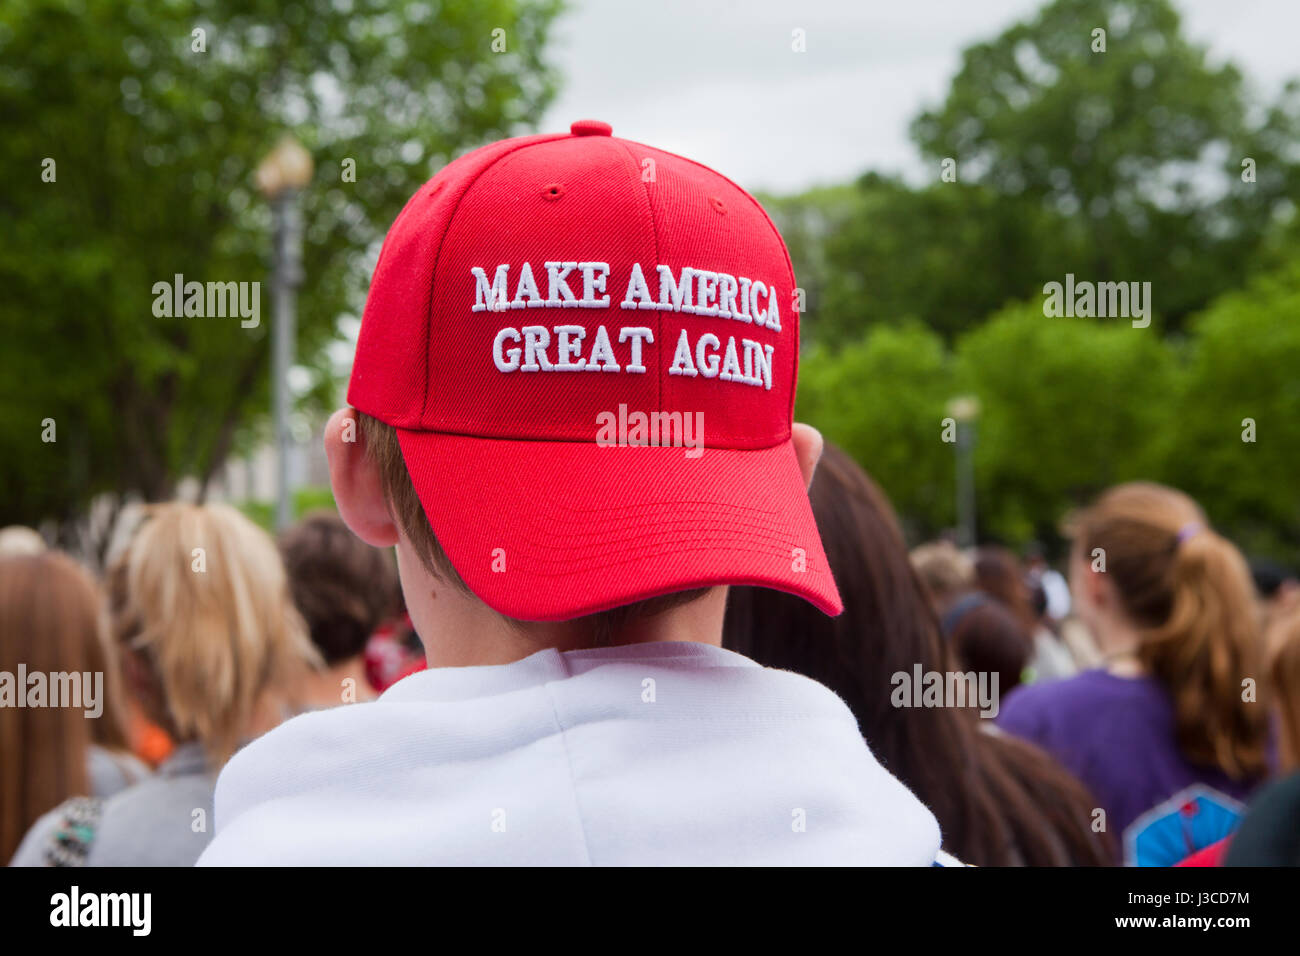 Young Caucasian Trump supporter wearing 'Make America Great Again' hat ( MAGA hat ) - USA - Stock Image